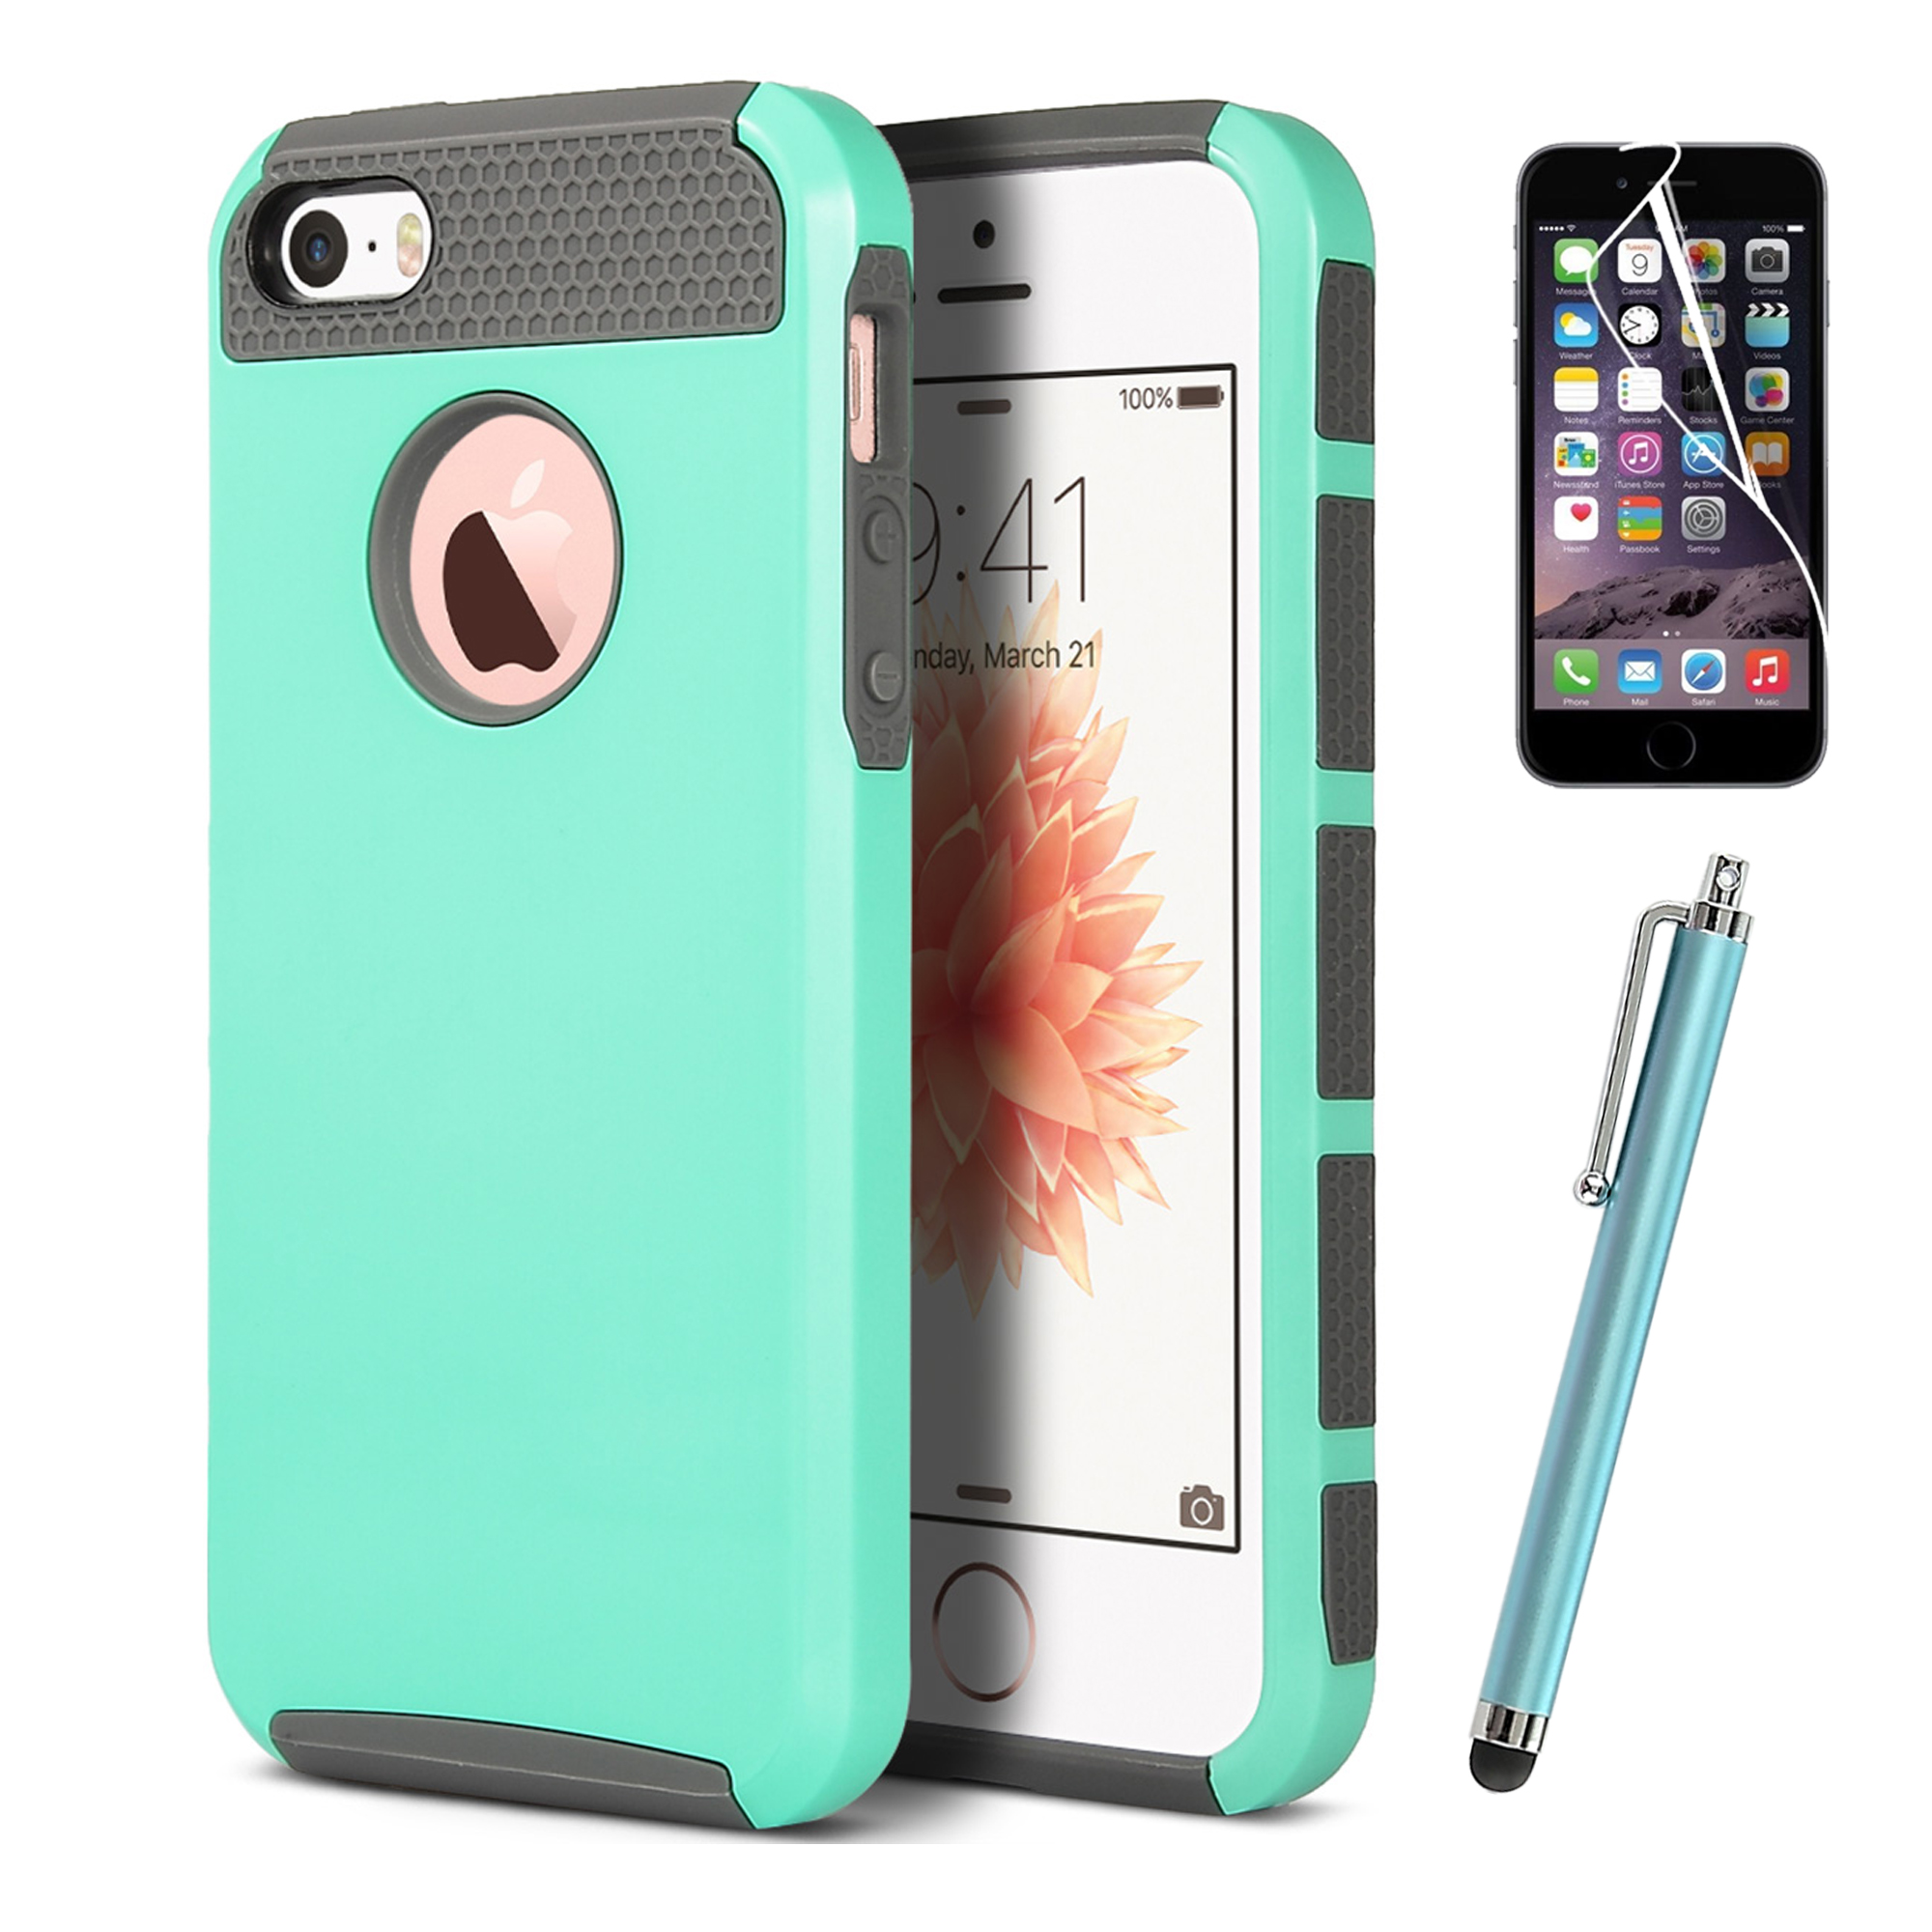 brand new b9fa0 e1828 ULAK iPhone 5 5S SE Case with Hybrid Hard Dual Layer Slim Fit Protection  Case Cover w/ Screen Protector & Stylus,Mint Green